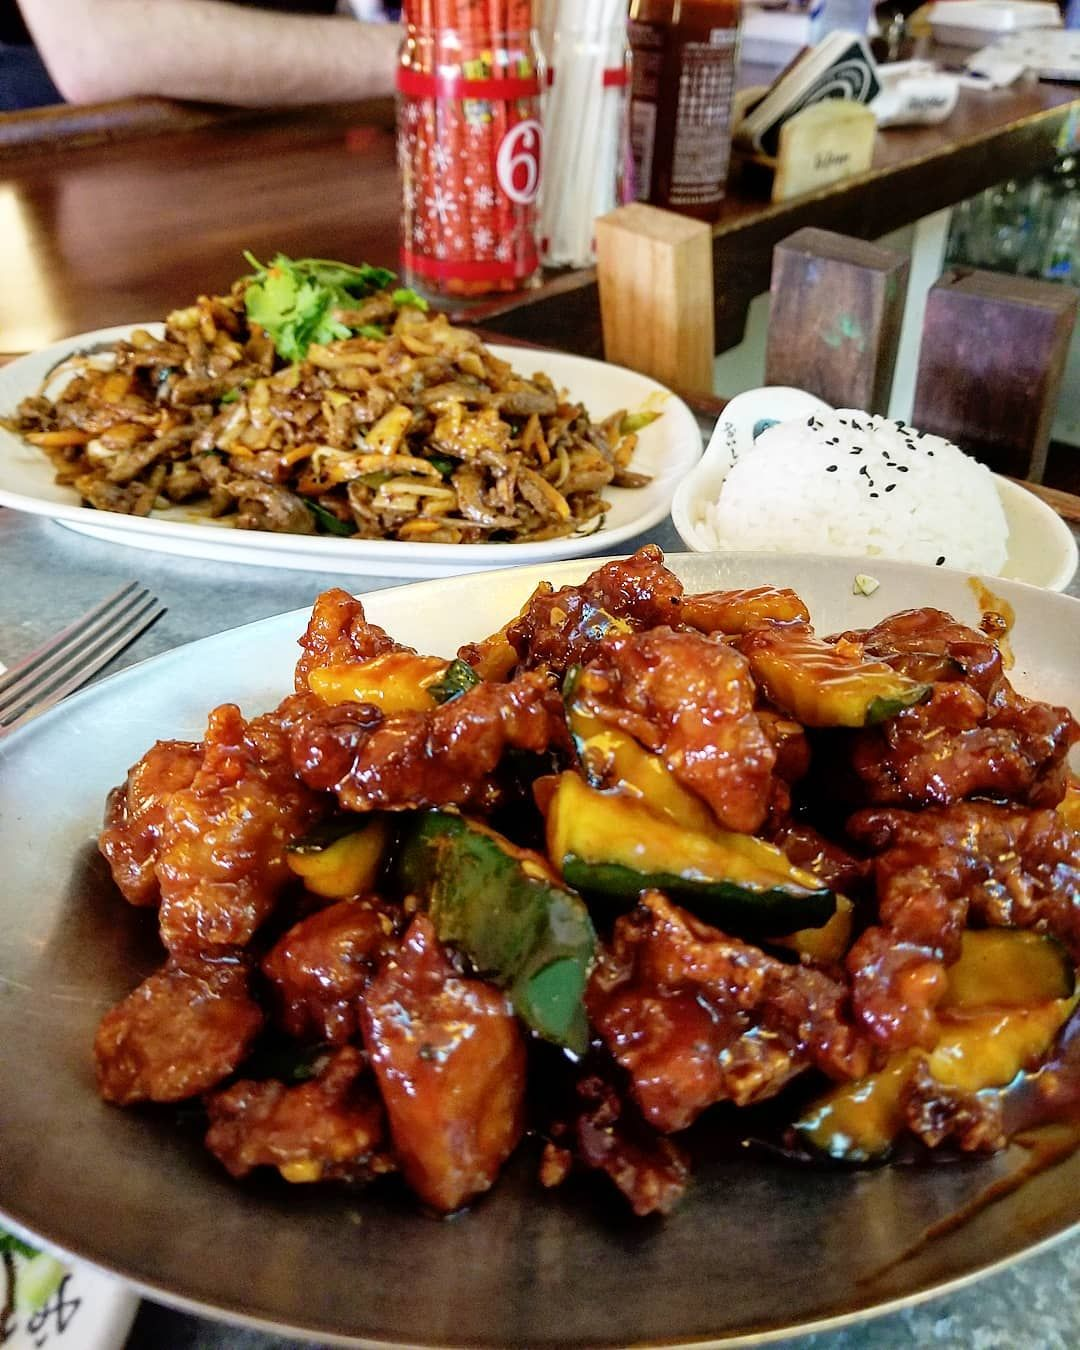 One Of The Best Restaurants In Covington Ky Kung Food Chu S Amerasia Just 10 Minutes From Downtown Cincinnati Asain Food Eat Asian Recipes